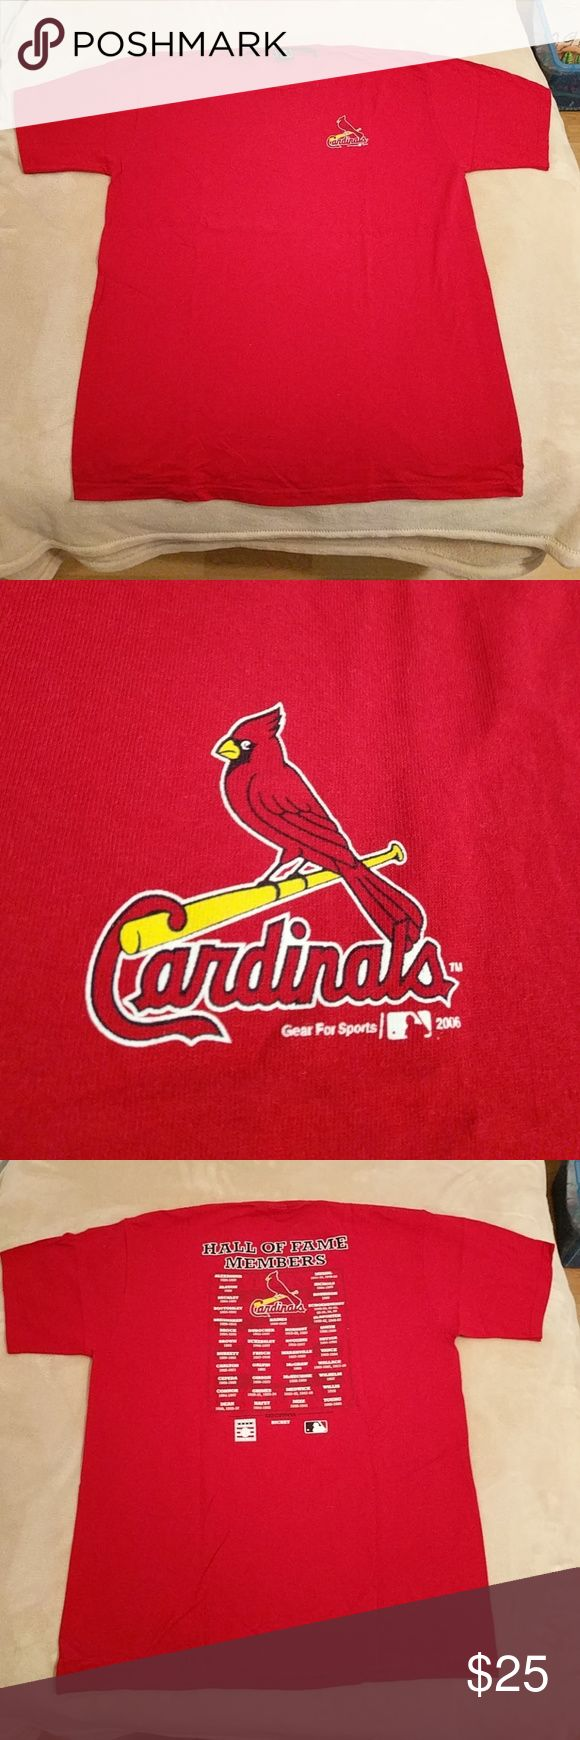 ST. LOUIS CARDINALS HALL of FAME. Features members of Cardinals Hall of Fame. Never worn. NEW!!! Shirts Tees - Short Sleeve